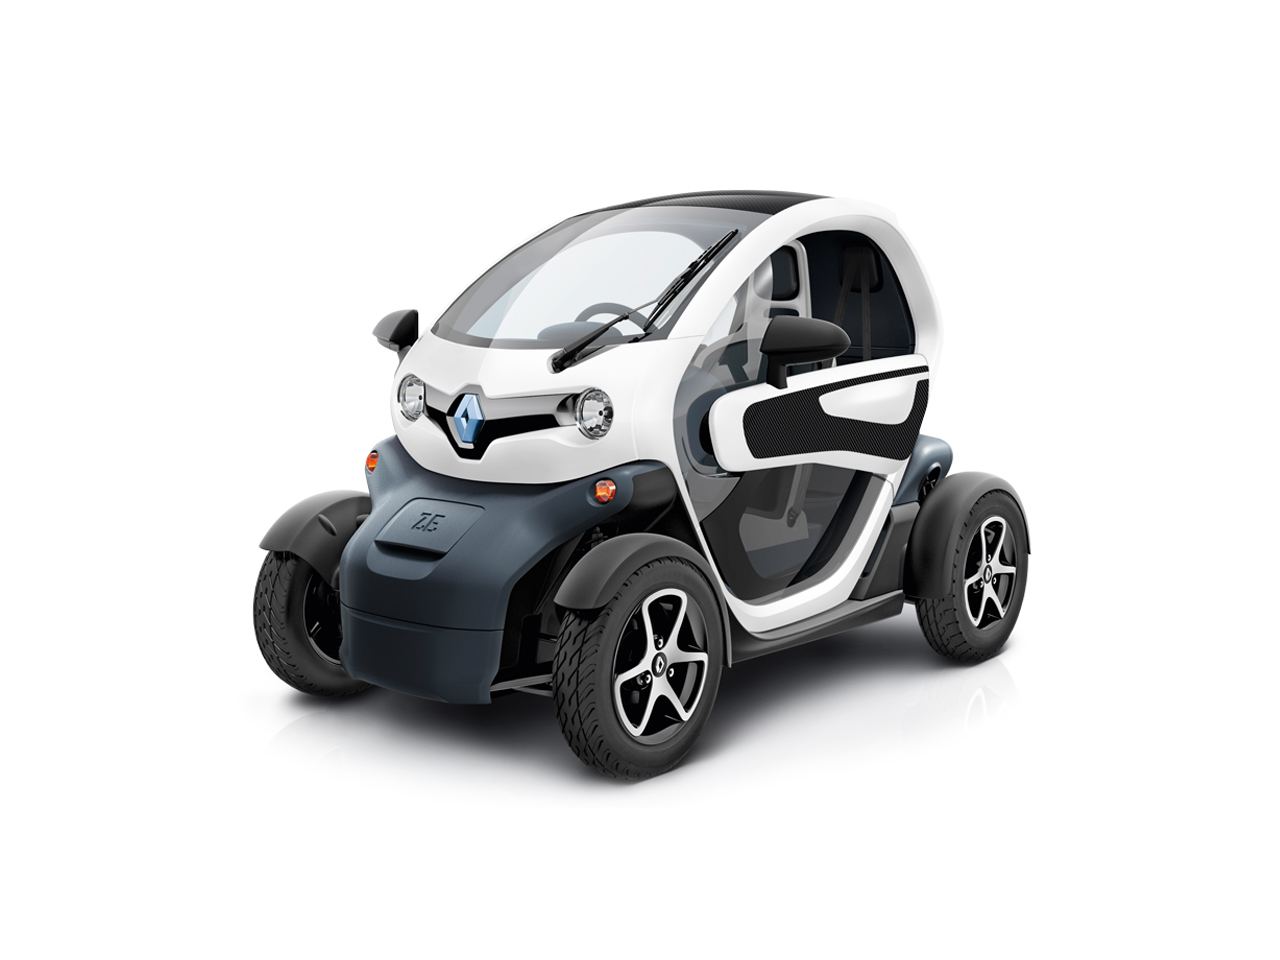 2018 Renault Twizy Prices in Bahrain, Gulf Specs & Reviews ...